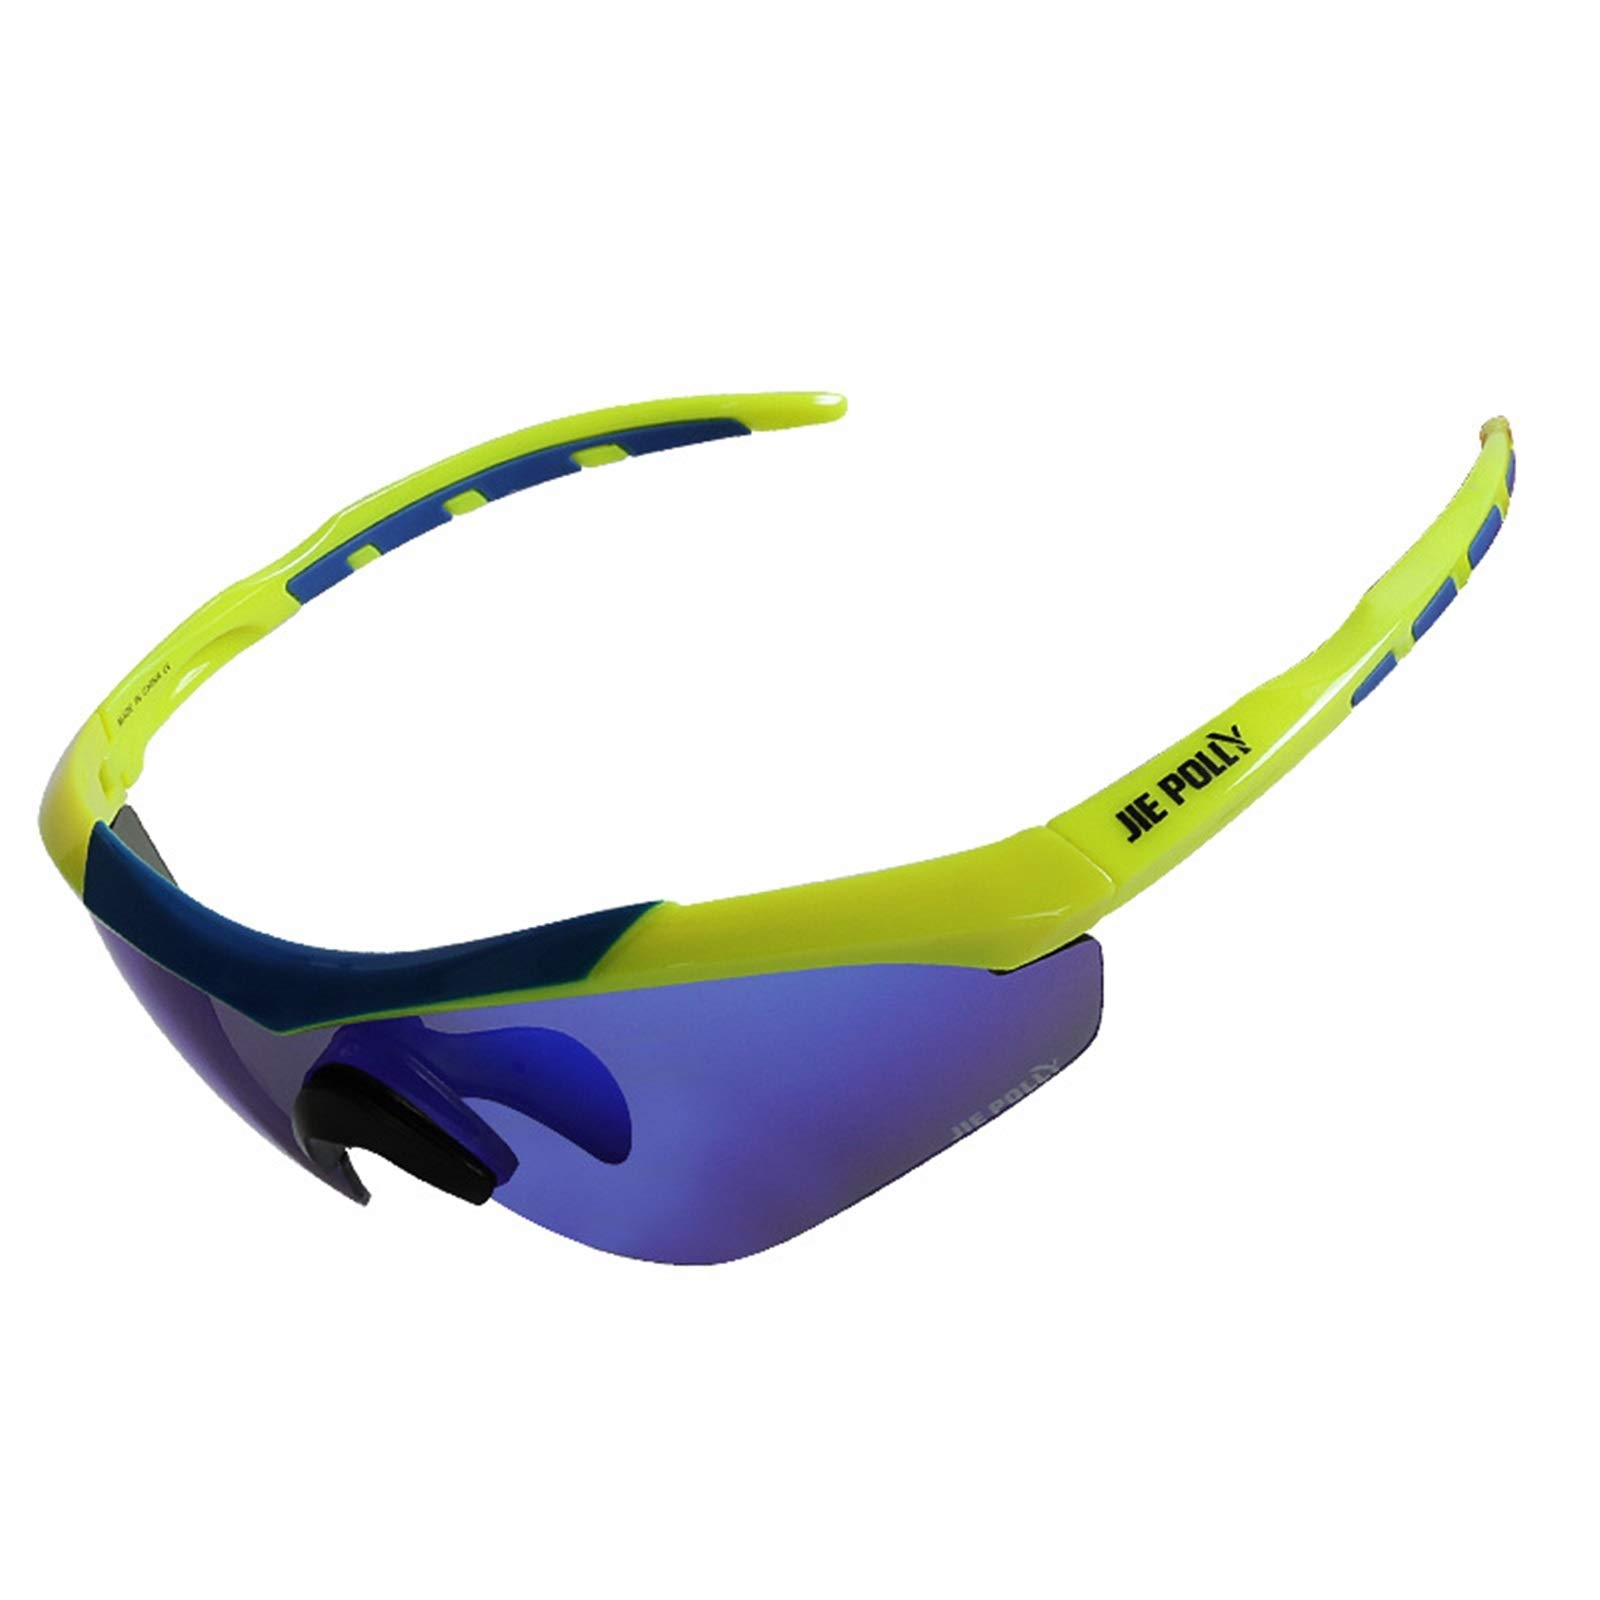 Adisaer Cycling Sunglasses Tactical Goggles Windshield Anti-Shock Bulletproof Glasses Blue Yellow for Adults